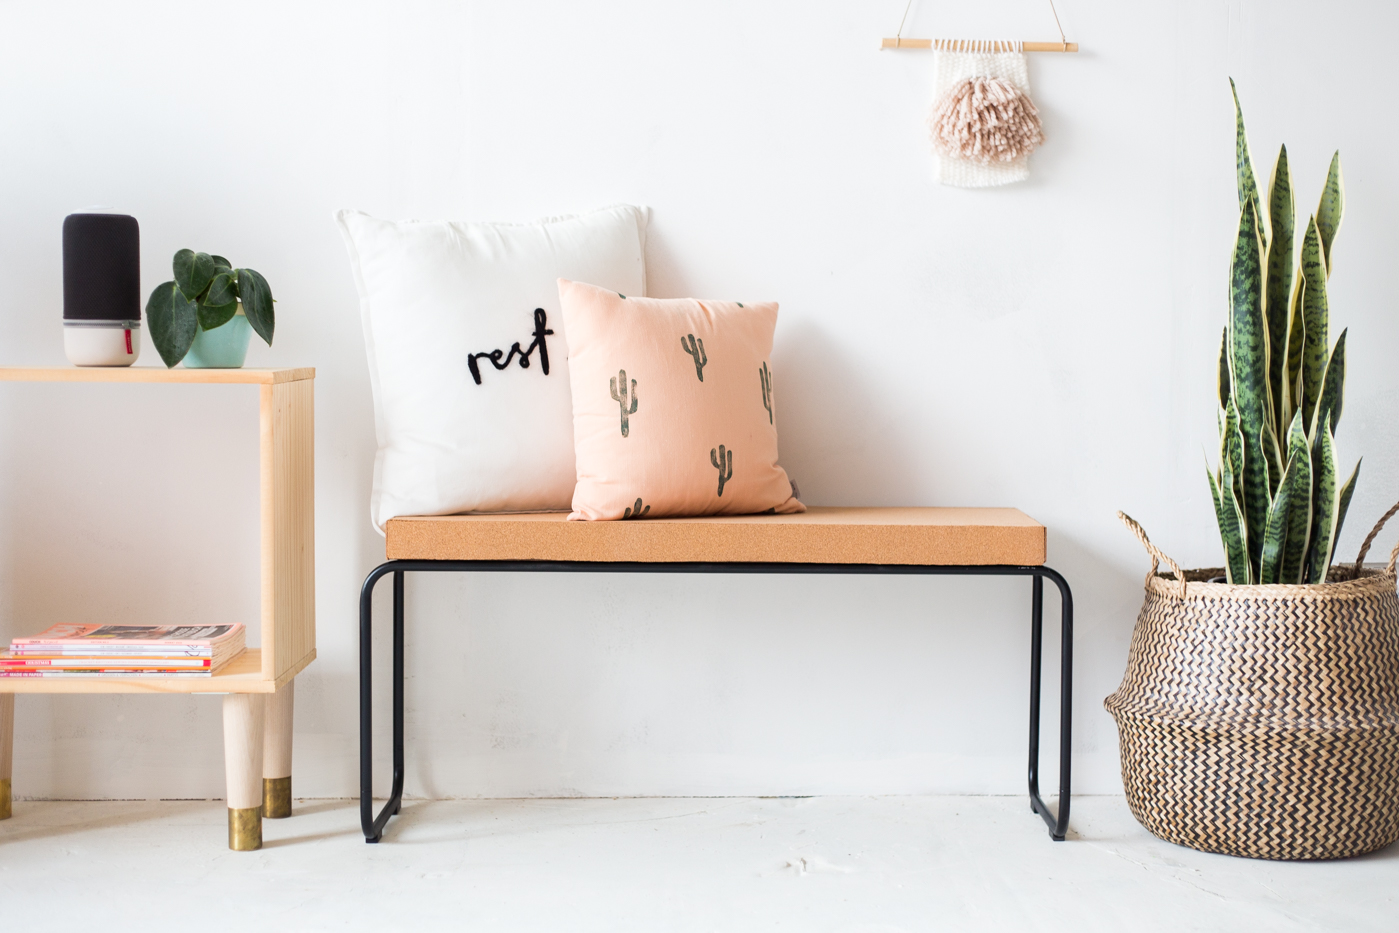 diy-cork-bench-fallfordiy-6